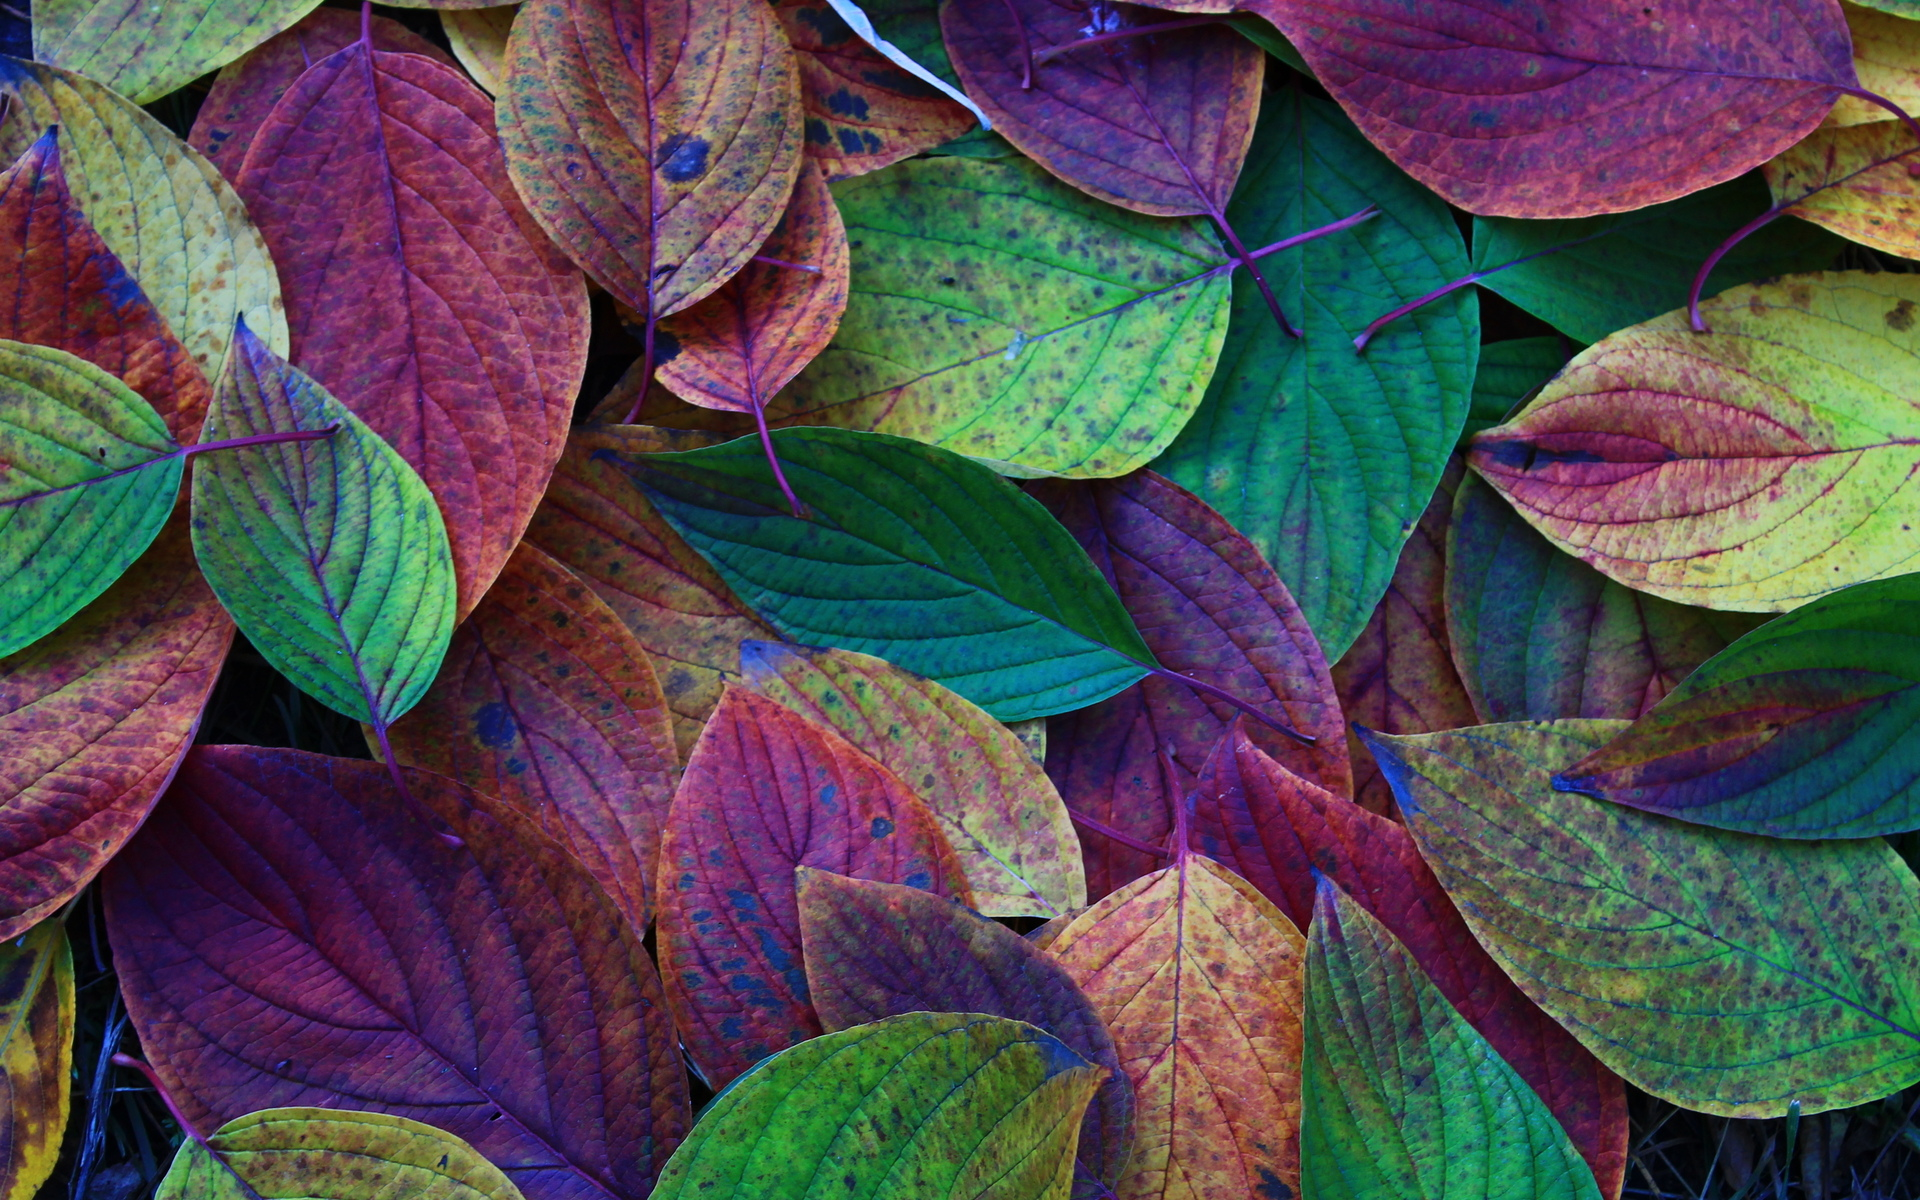 Autumn Leaves Desktop Backgrounds   Wallpaper High Definition High 1920x1200